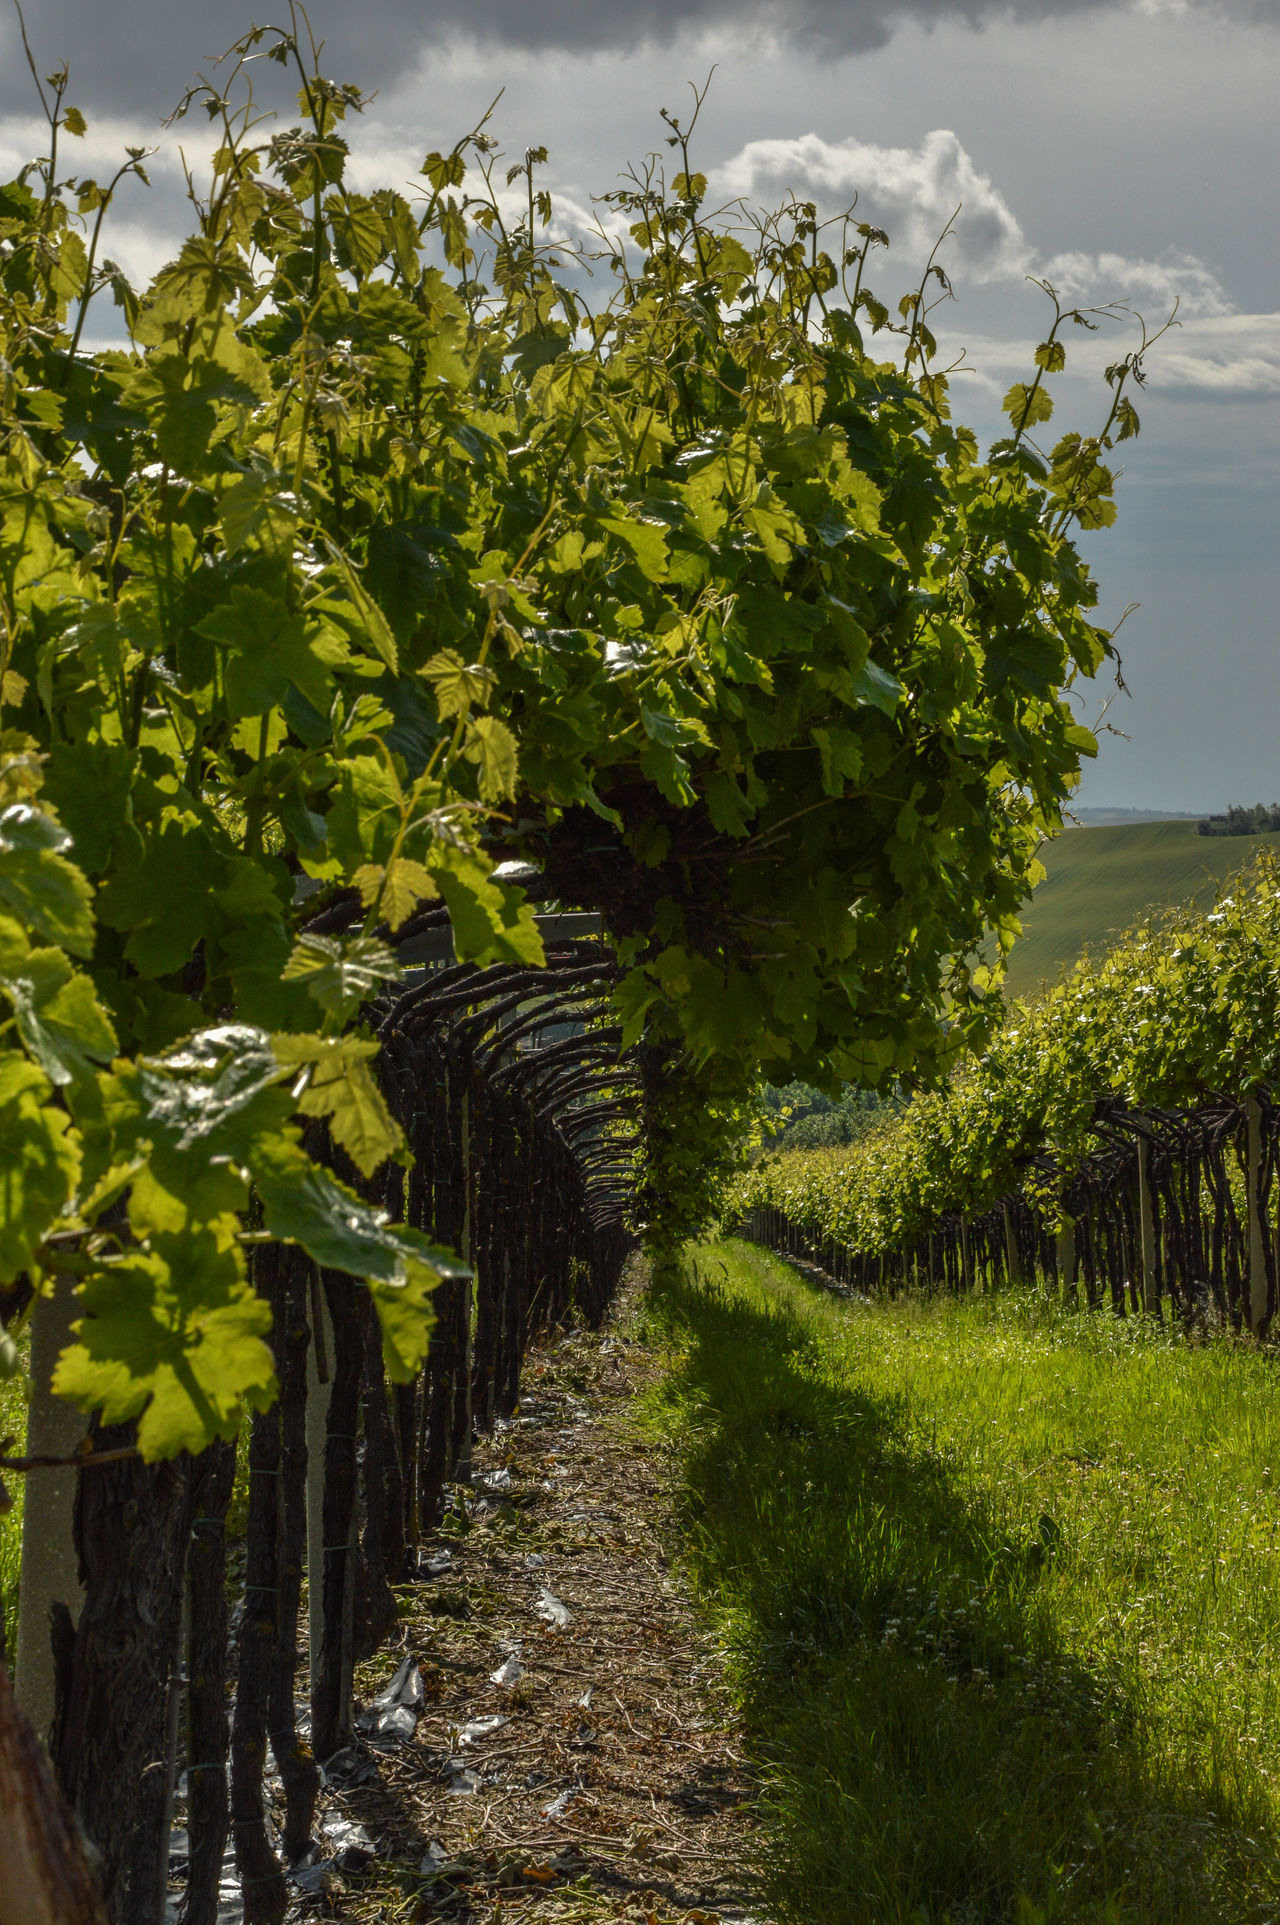 Agriculture Beauty In Nature Day Grapefruit Grapes 🍇 Grapevine Green Color Growth Nature No People Outdoors Plant Scenics Tree Wine Wine Moments